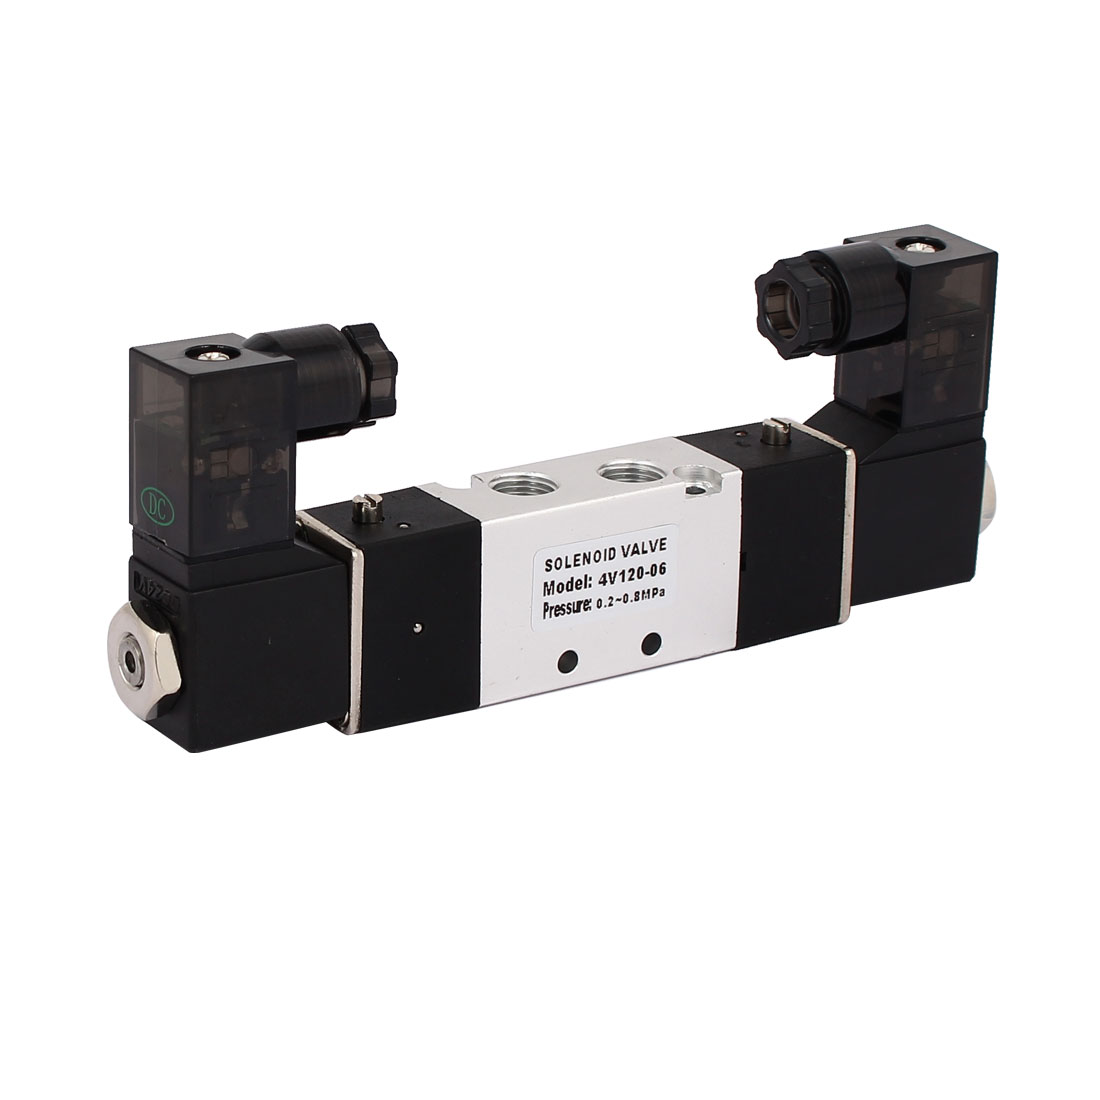 DC 24V 2 Position 5 Way Neutral Pneumatic Air Control Solenoid Valve 4V120-06